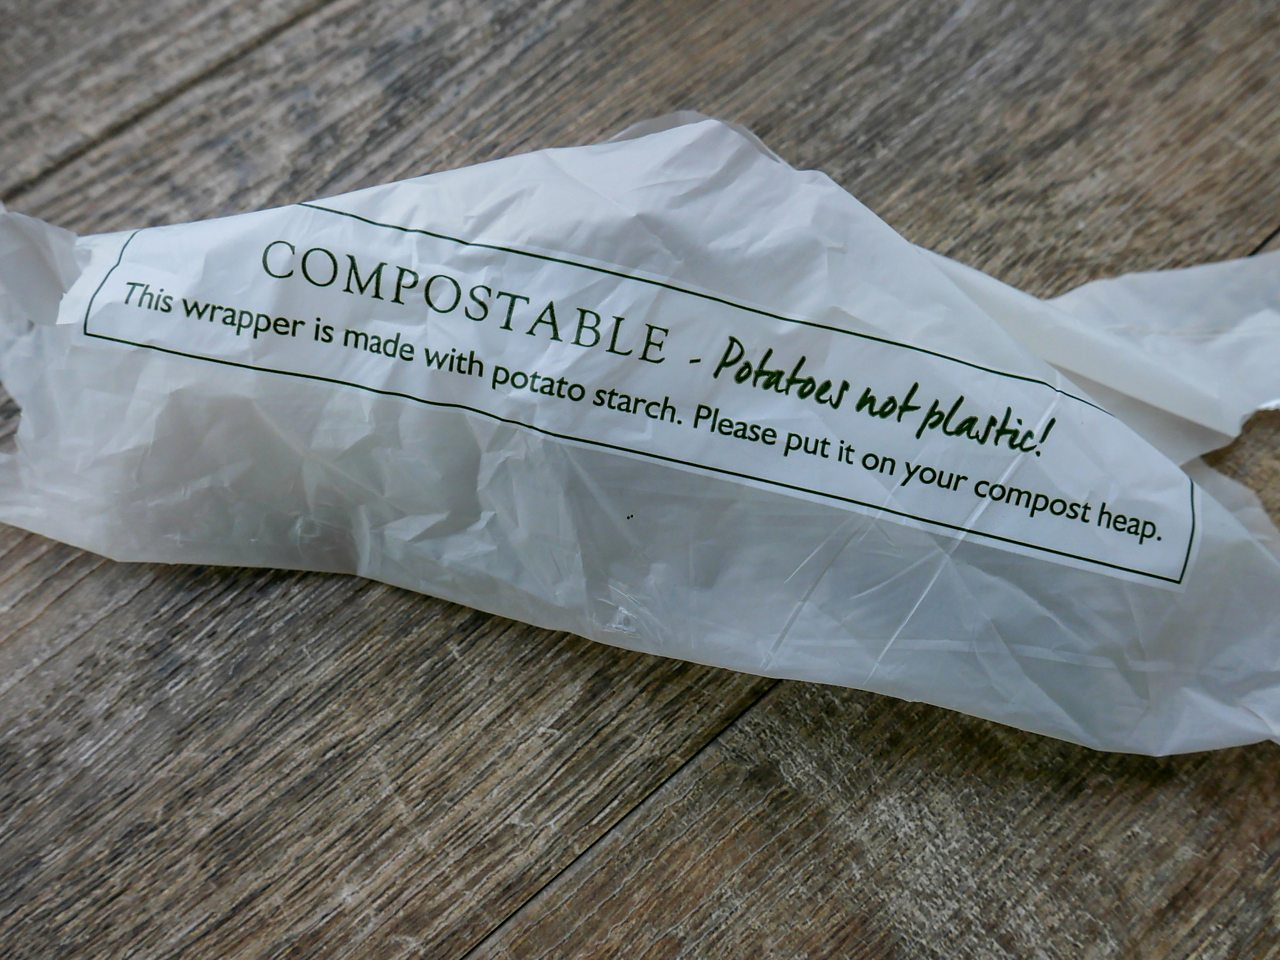 Photograph showing a compostable bag made from potato starch